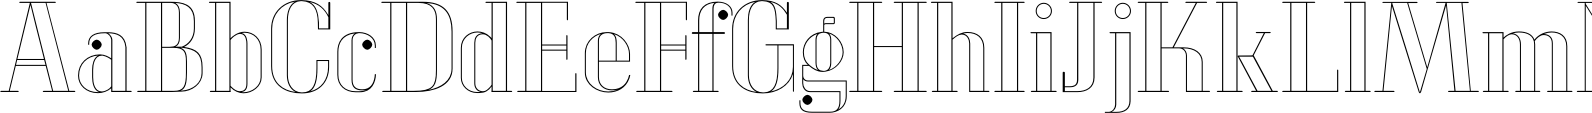 LTC Glamour Hairline Engraved Font